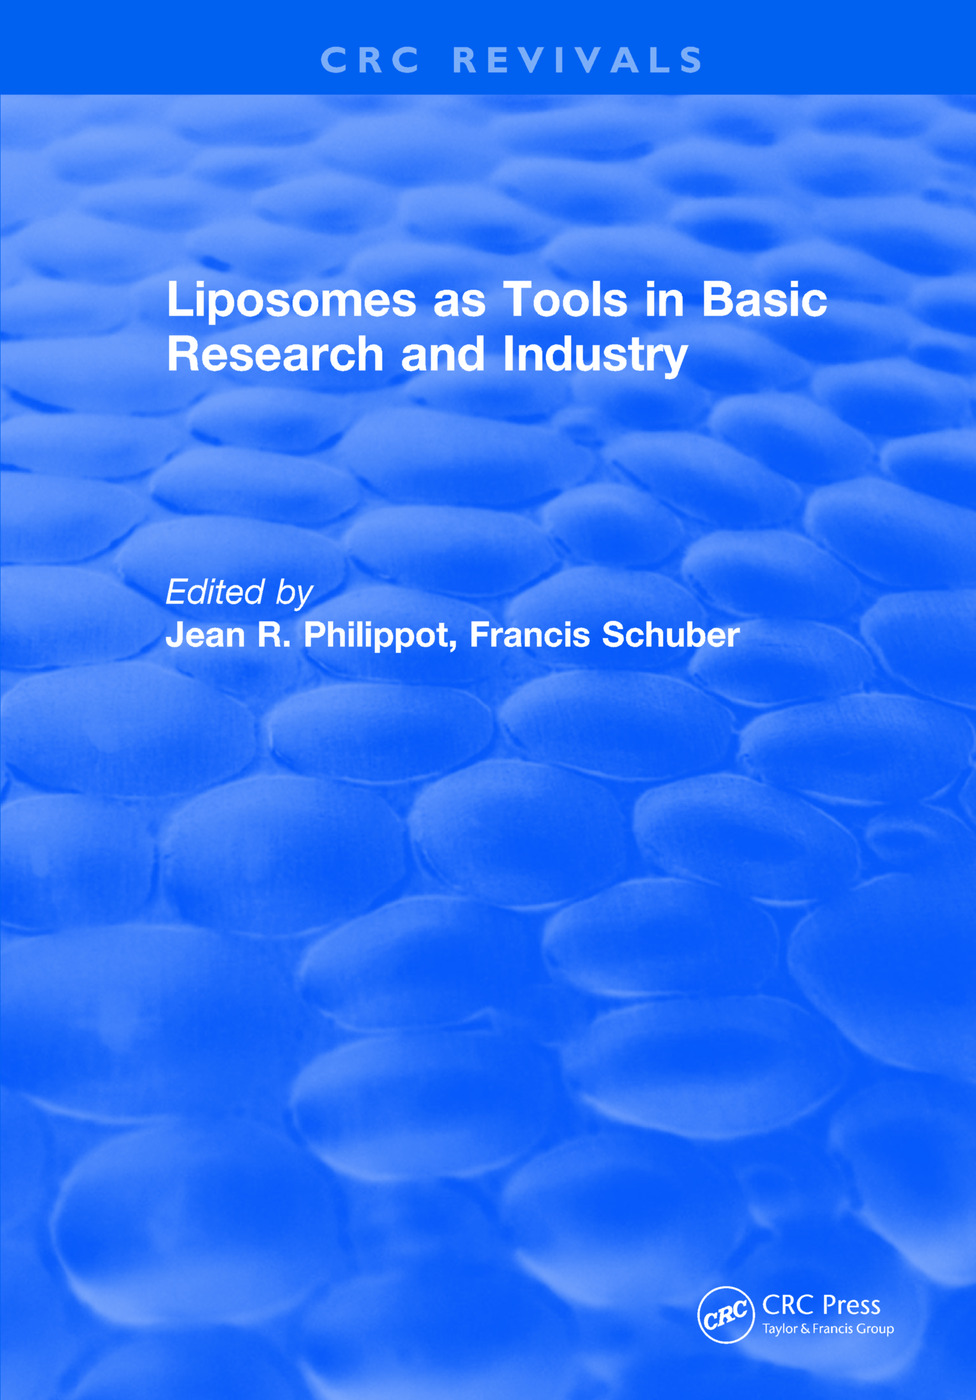 Liposomes as Tools in Basic Research and Industry (1994)